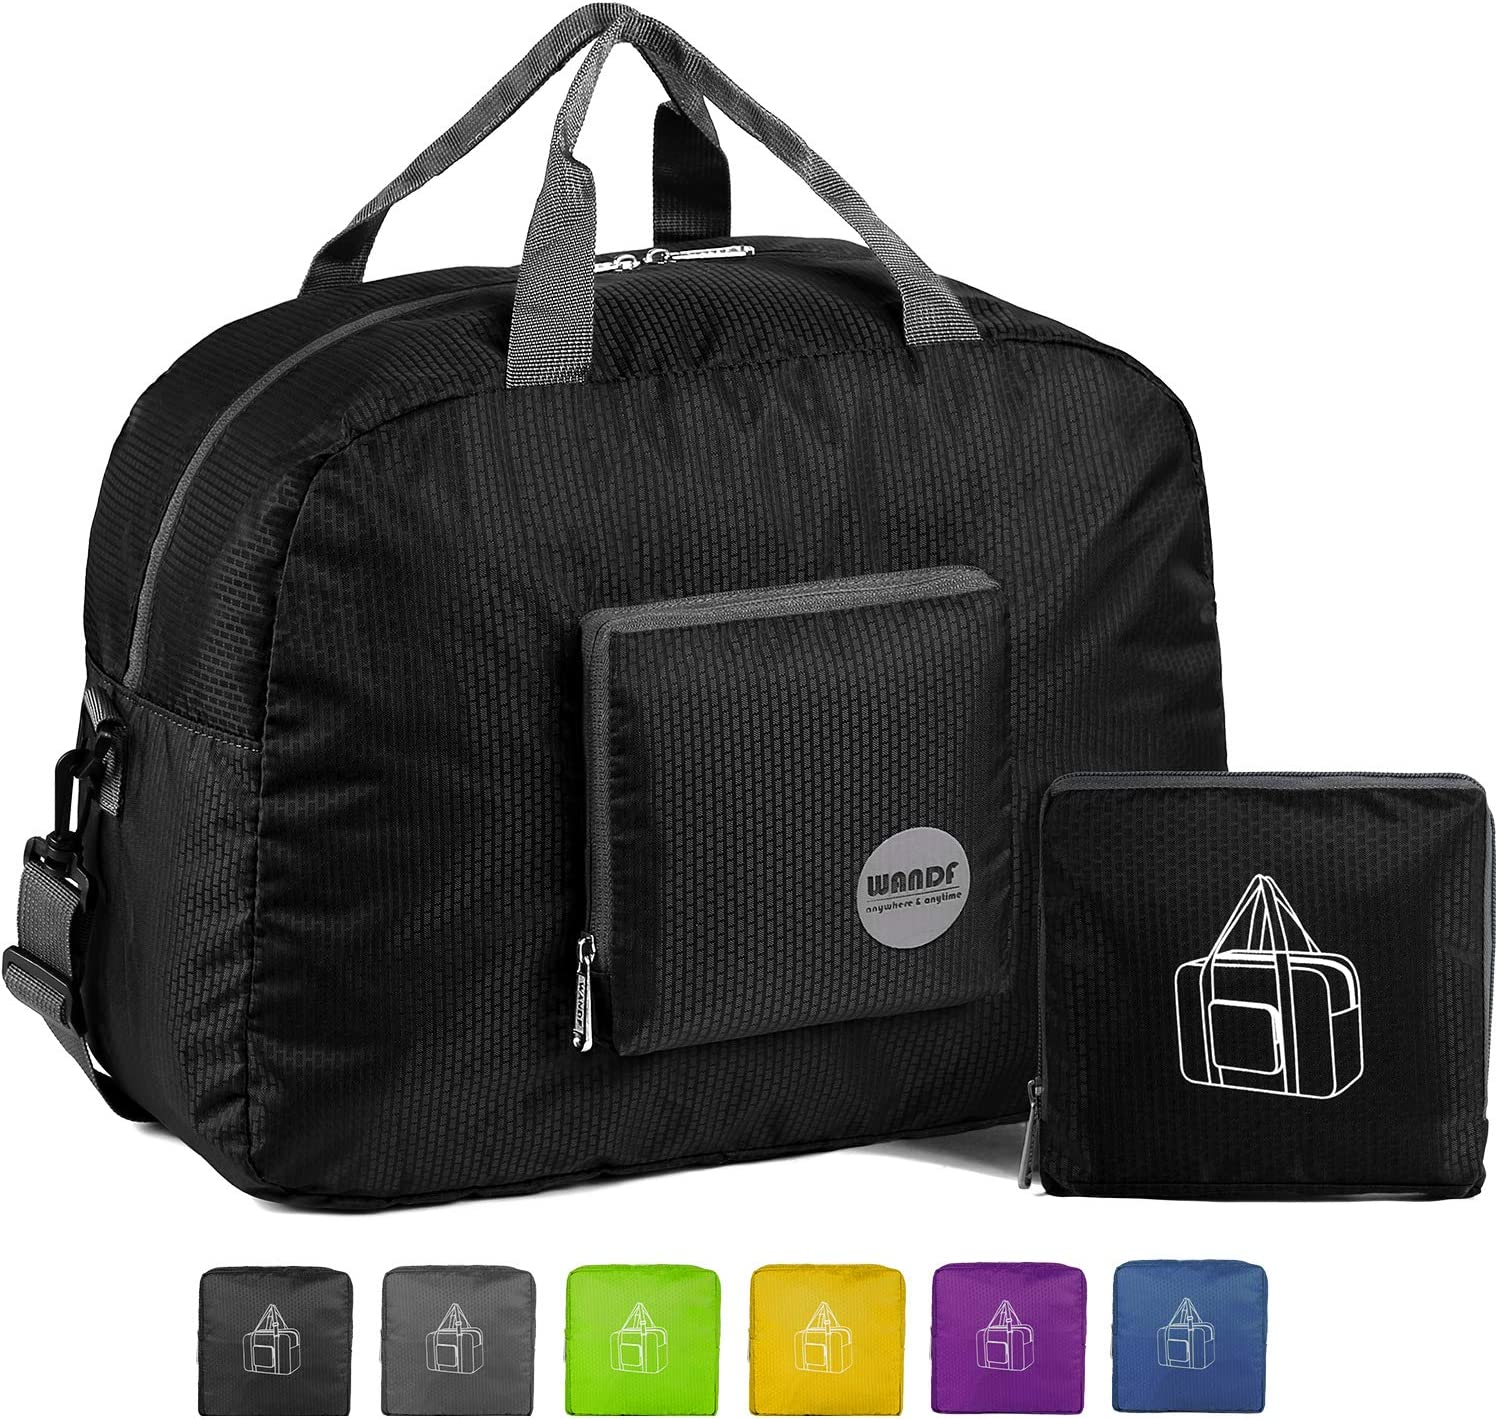 WANDF 16 22 Foldable Duffle Bag 20L 50L for Travel Gym Sports Lightweight Luggage Duffel 10 Color Choices